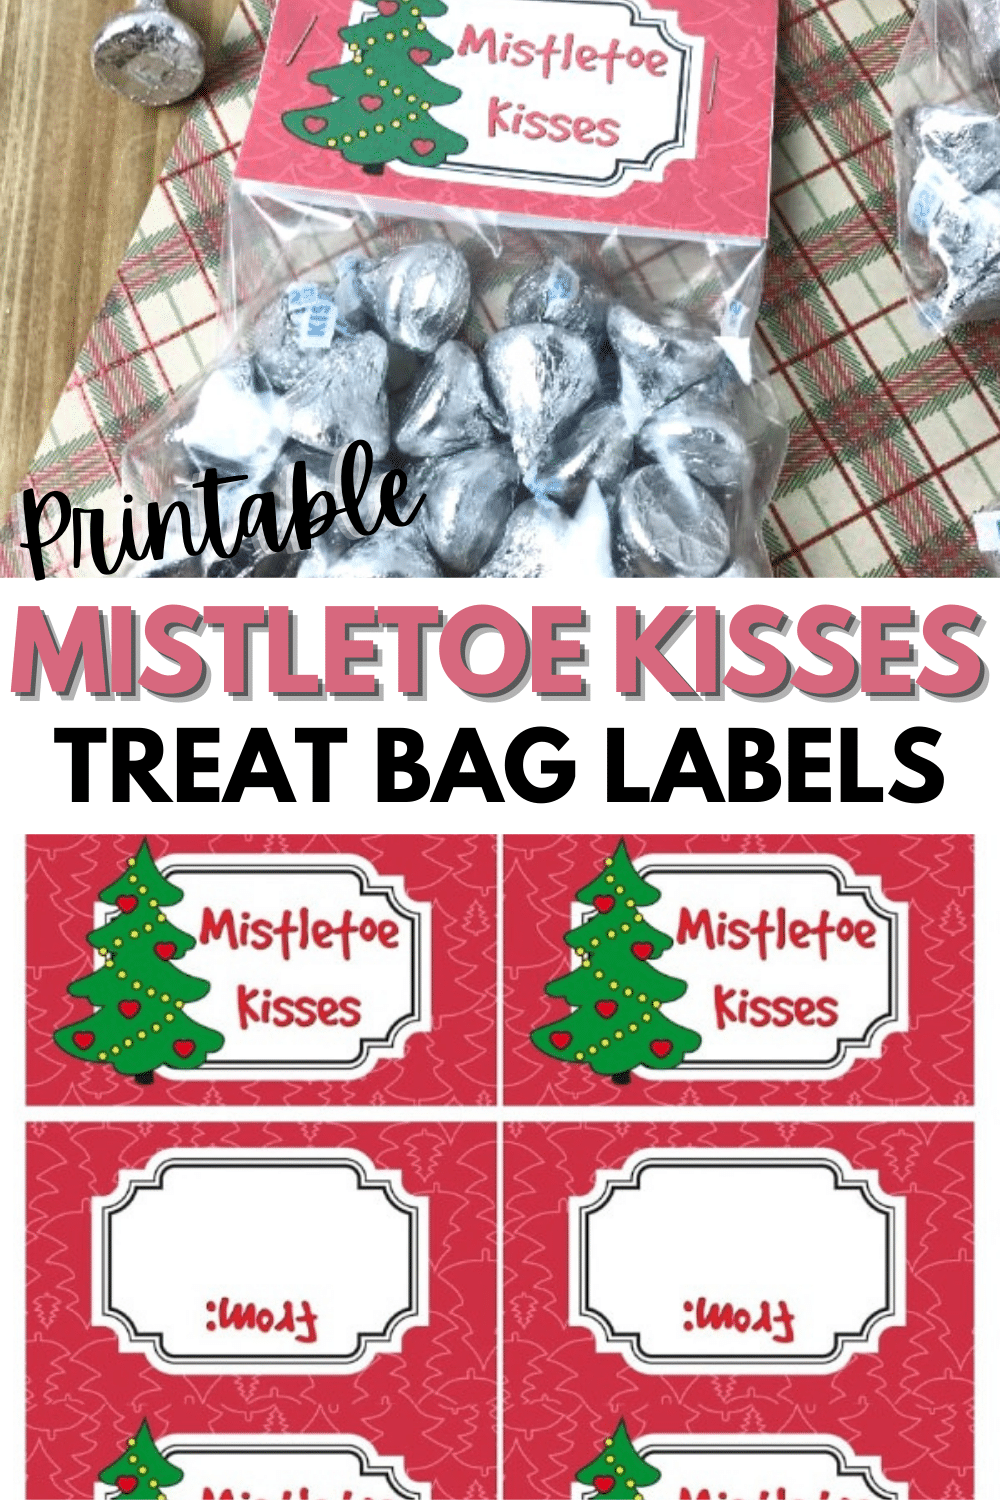 Mistletoe Kisses Treat Bags comes with printable treat bag toppers and are such a quick gift to make. Fill the treat bags with Hershey kisses and give away. #treatbags #christmas #printables via @wondermomwannab